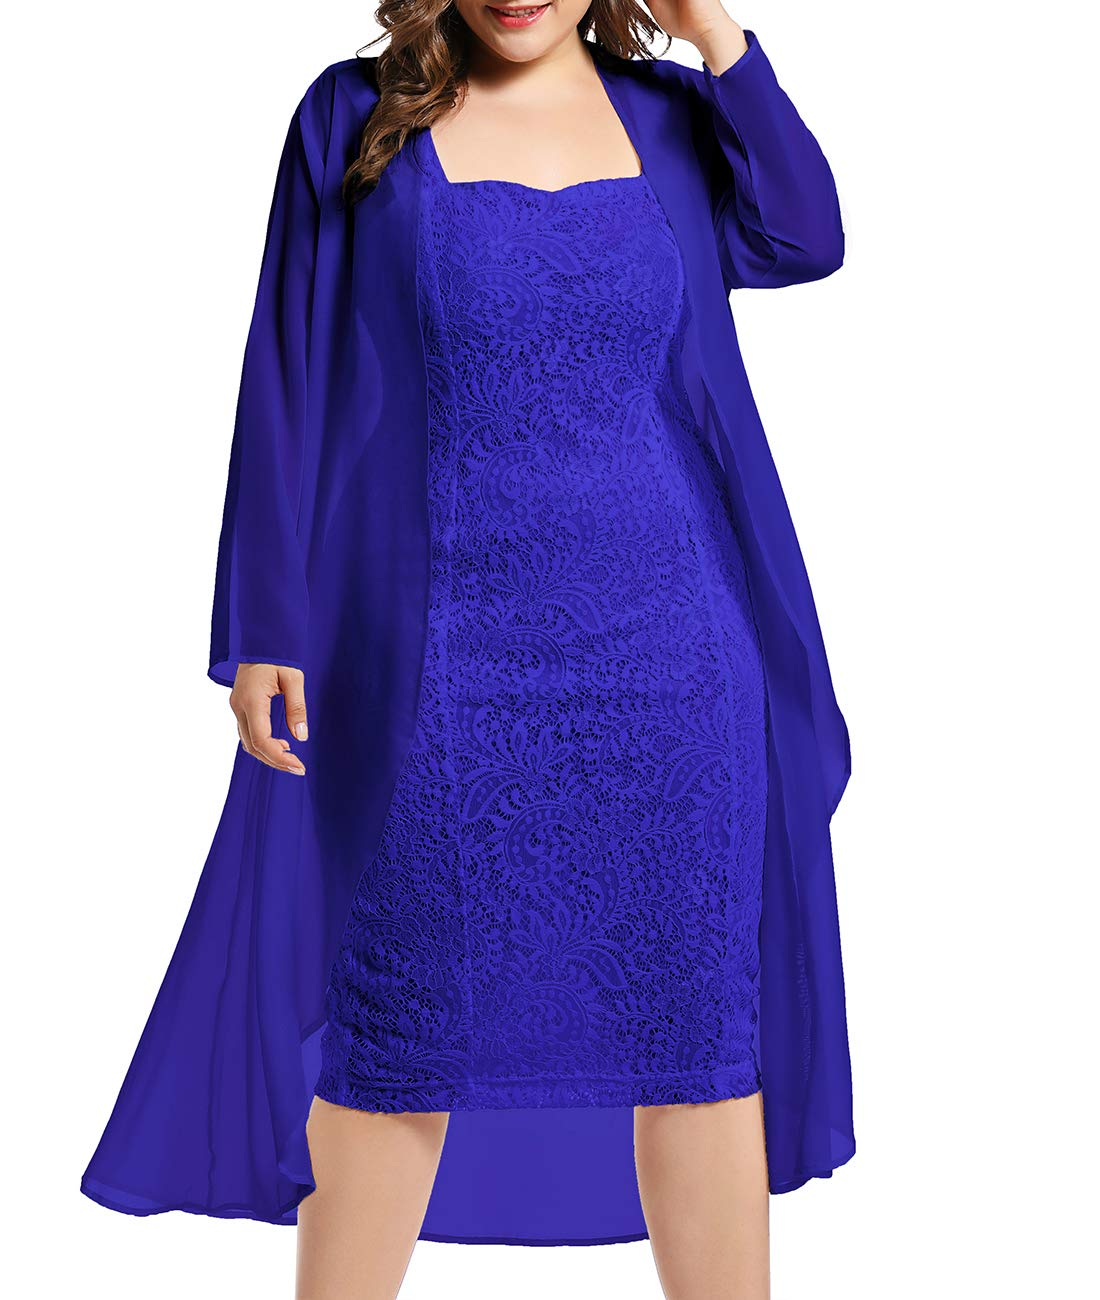 Available at Amazon: LALAGEN Women's Plus Size Lace Bodycon Wedding Party Midi Dress with Chiffon Cardigan